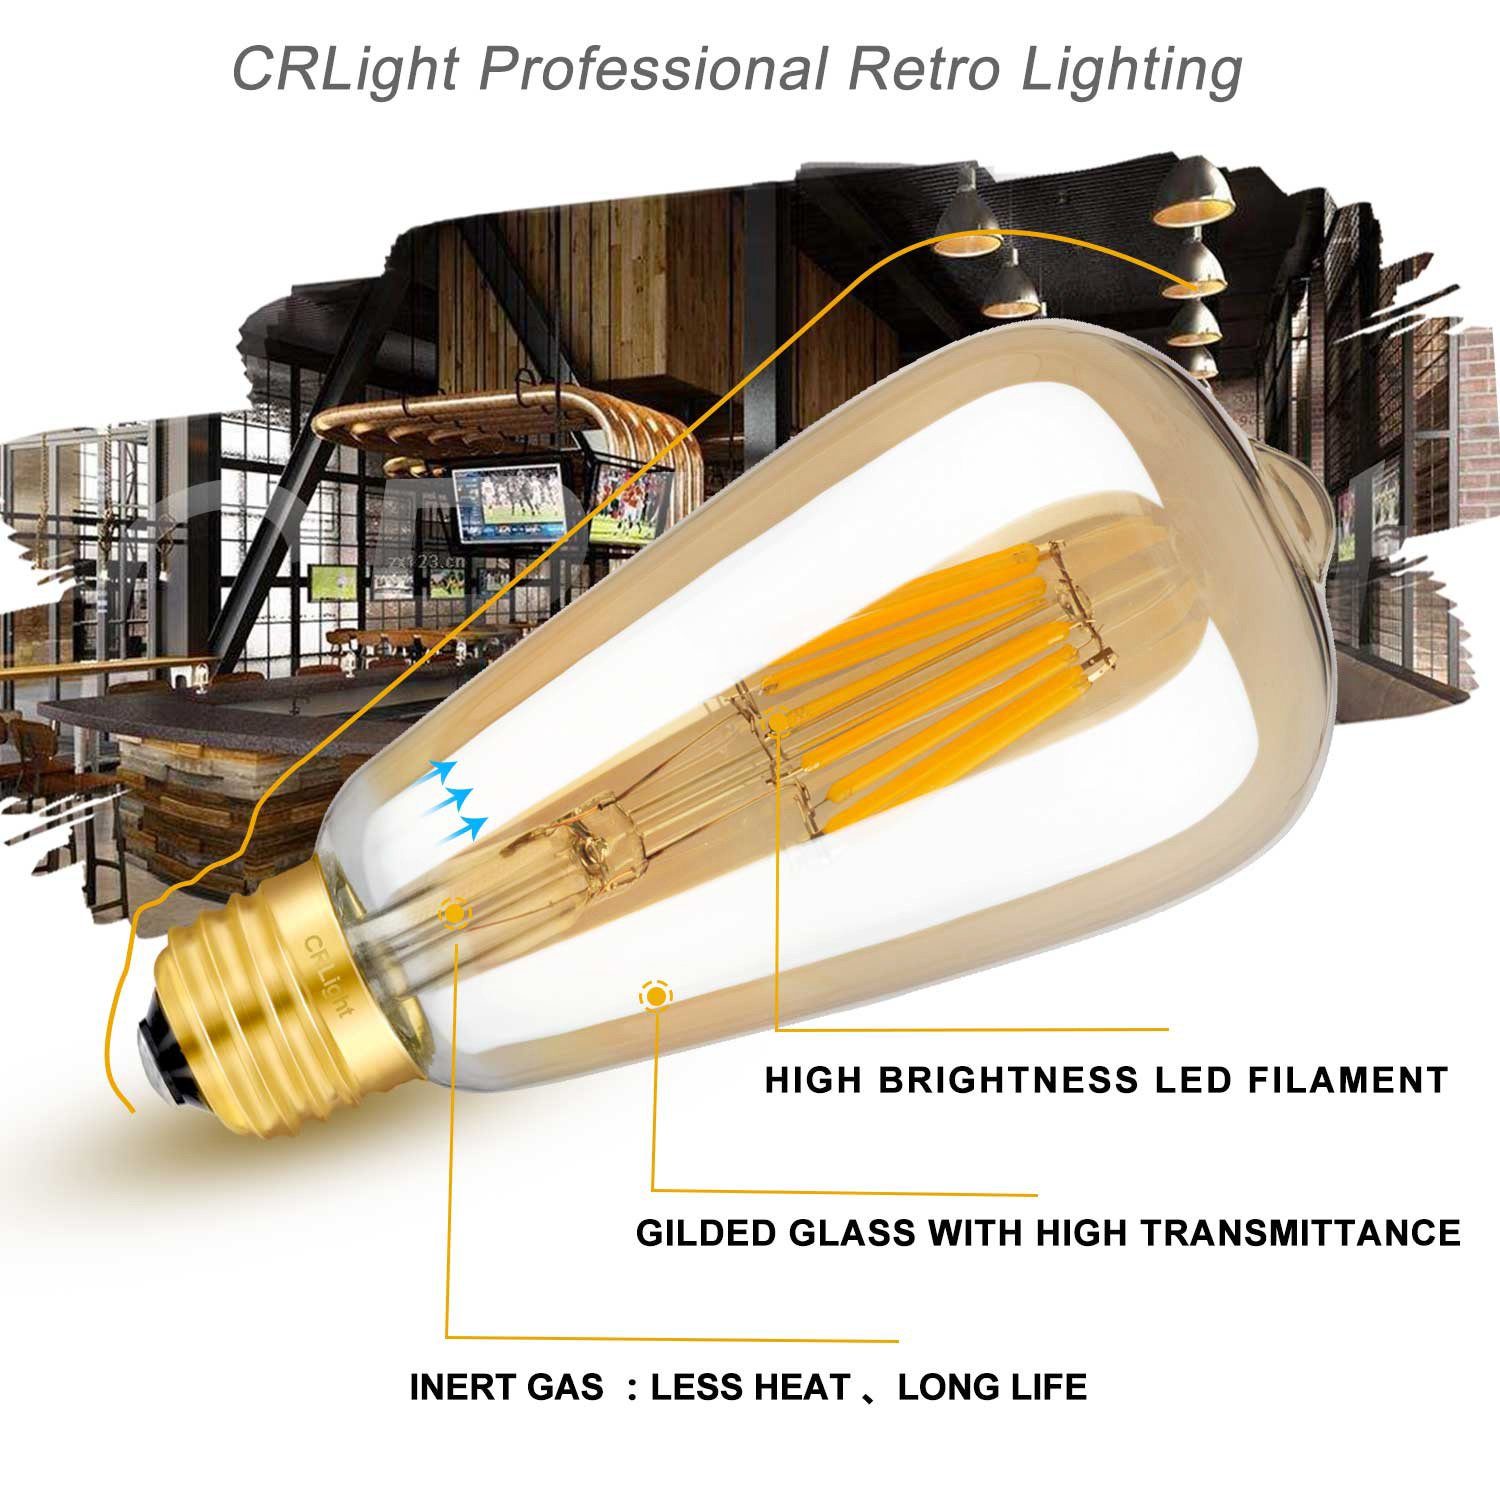 Crlight Led Edison Bulb 8w Dimmable 2700k Warm White 800lm 80w 300pwh Diva 300w Electronic Low Voltage Single Pole Dimmer In Equivalent E26 Medium Base St21st64 Vintage Gilded Glass Filament Bulbs